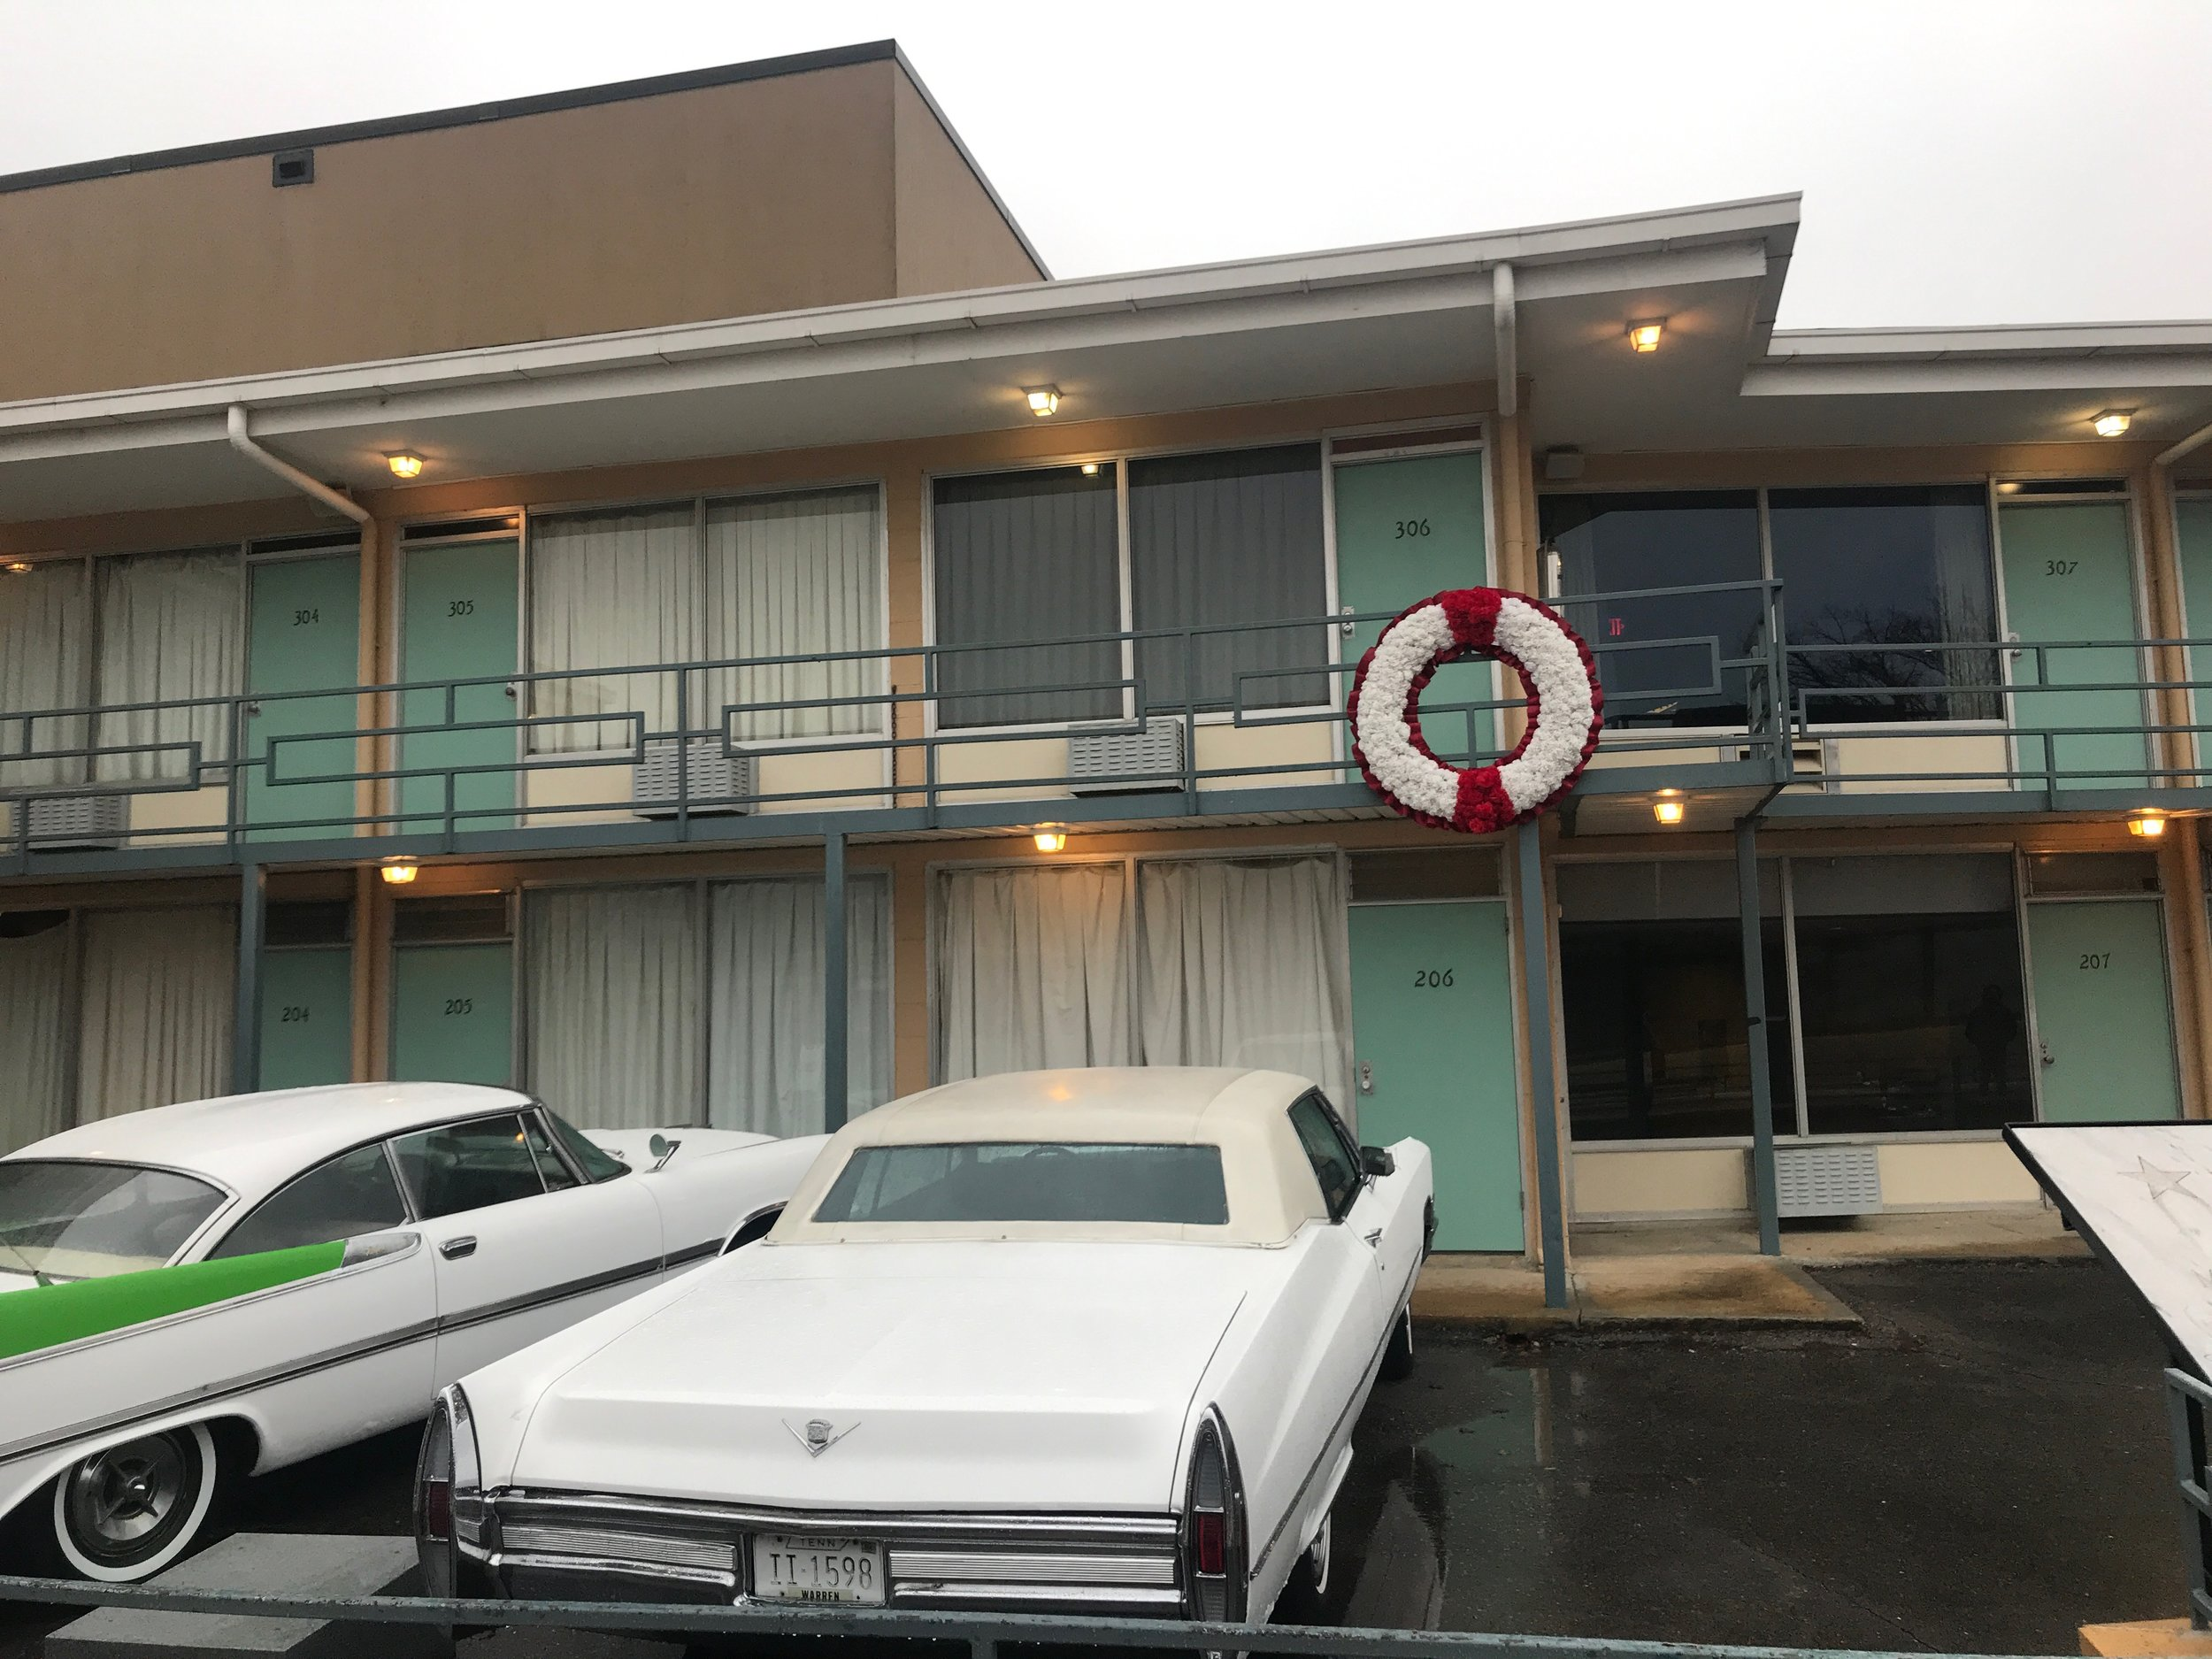 The Lorraine Motel in Memphis, site of the assassination of Dr. Martin Luther King Jr., is now part of the National Civil Rights Museum.